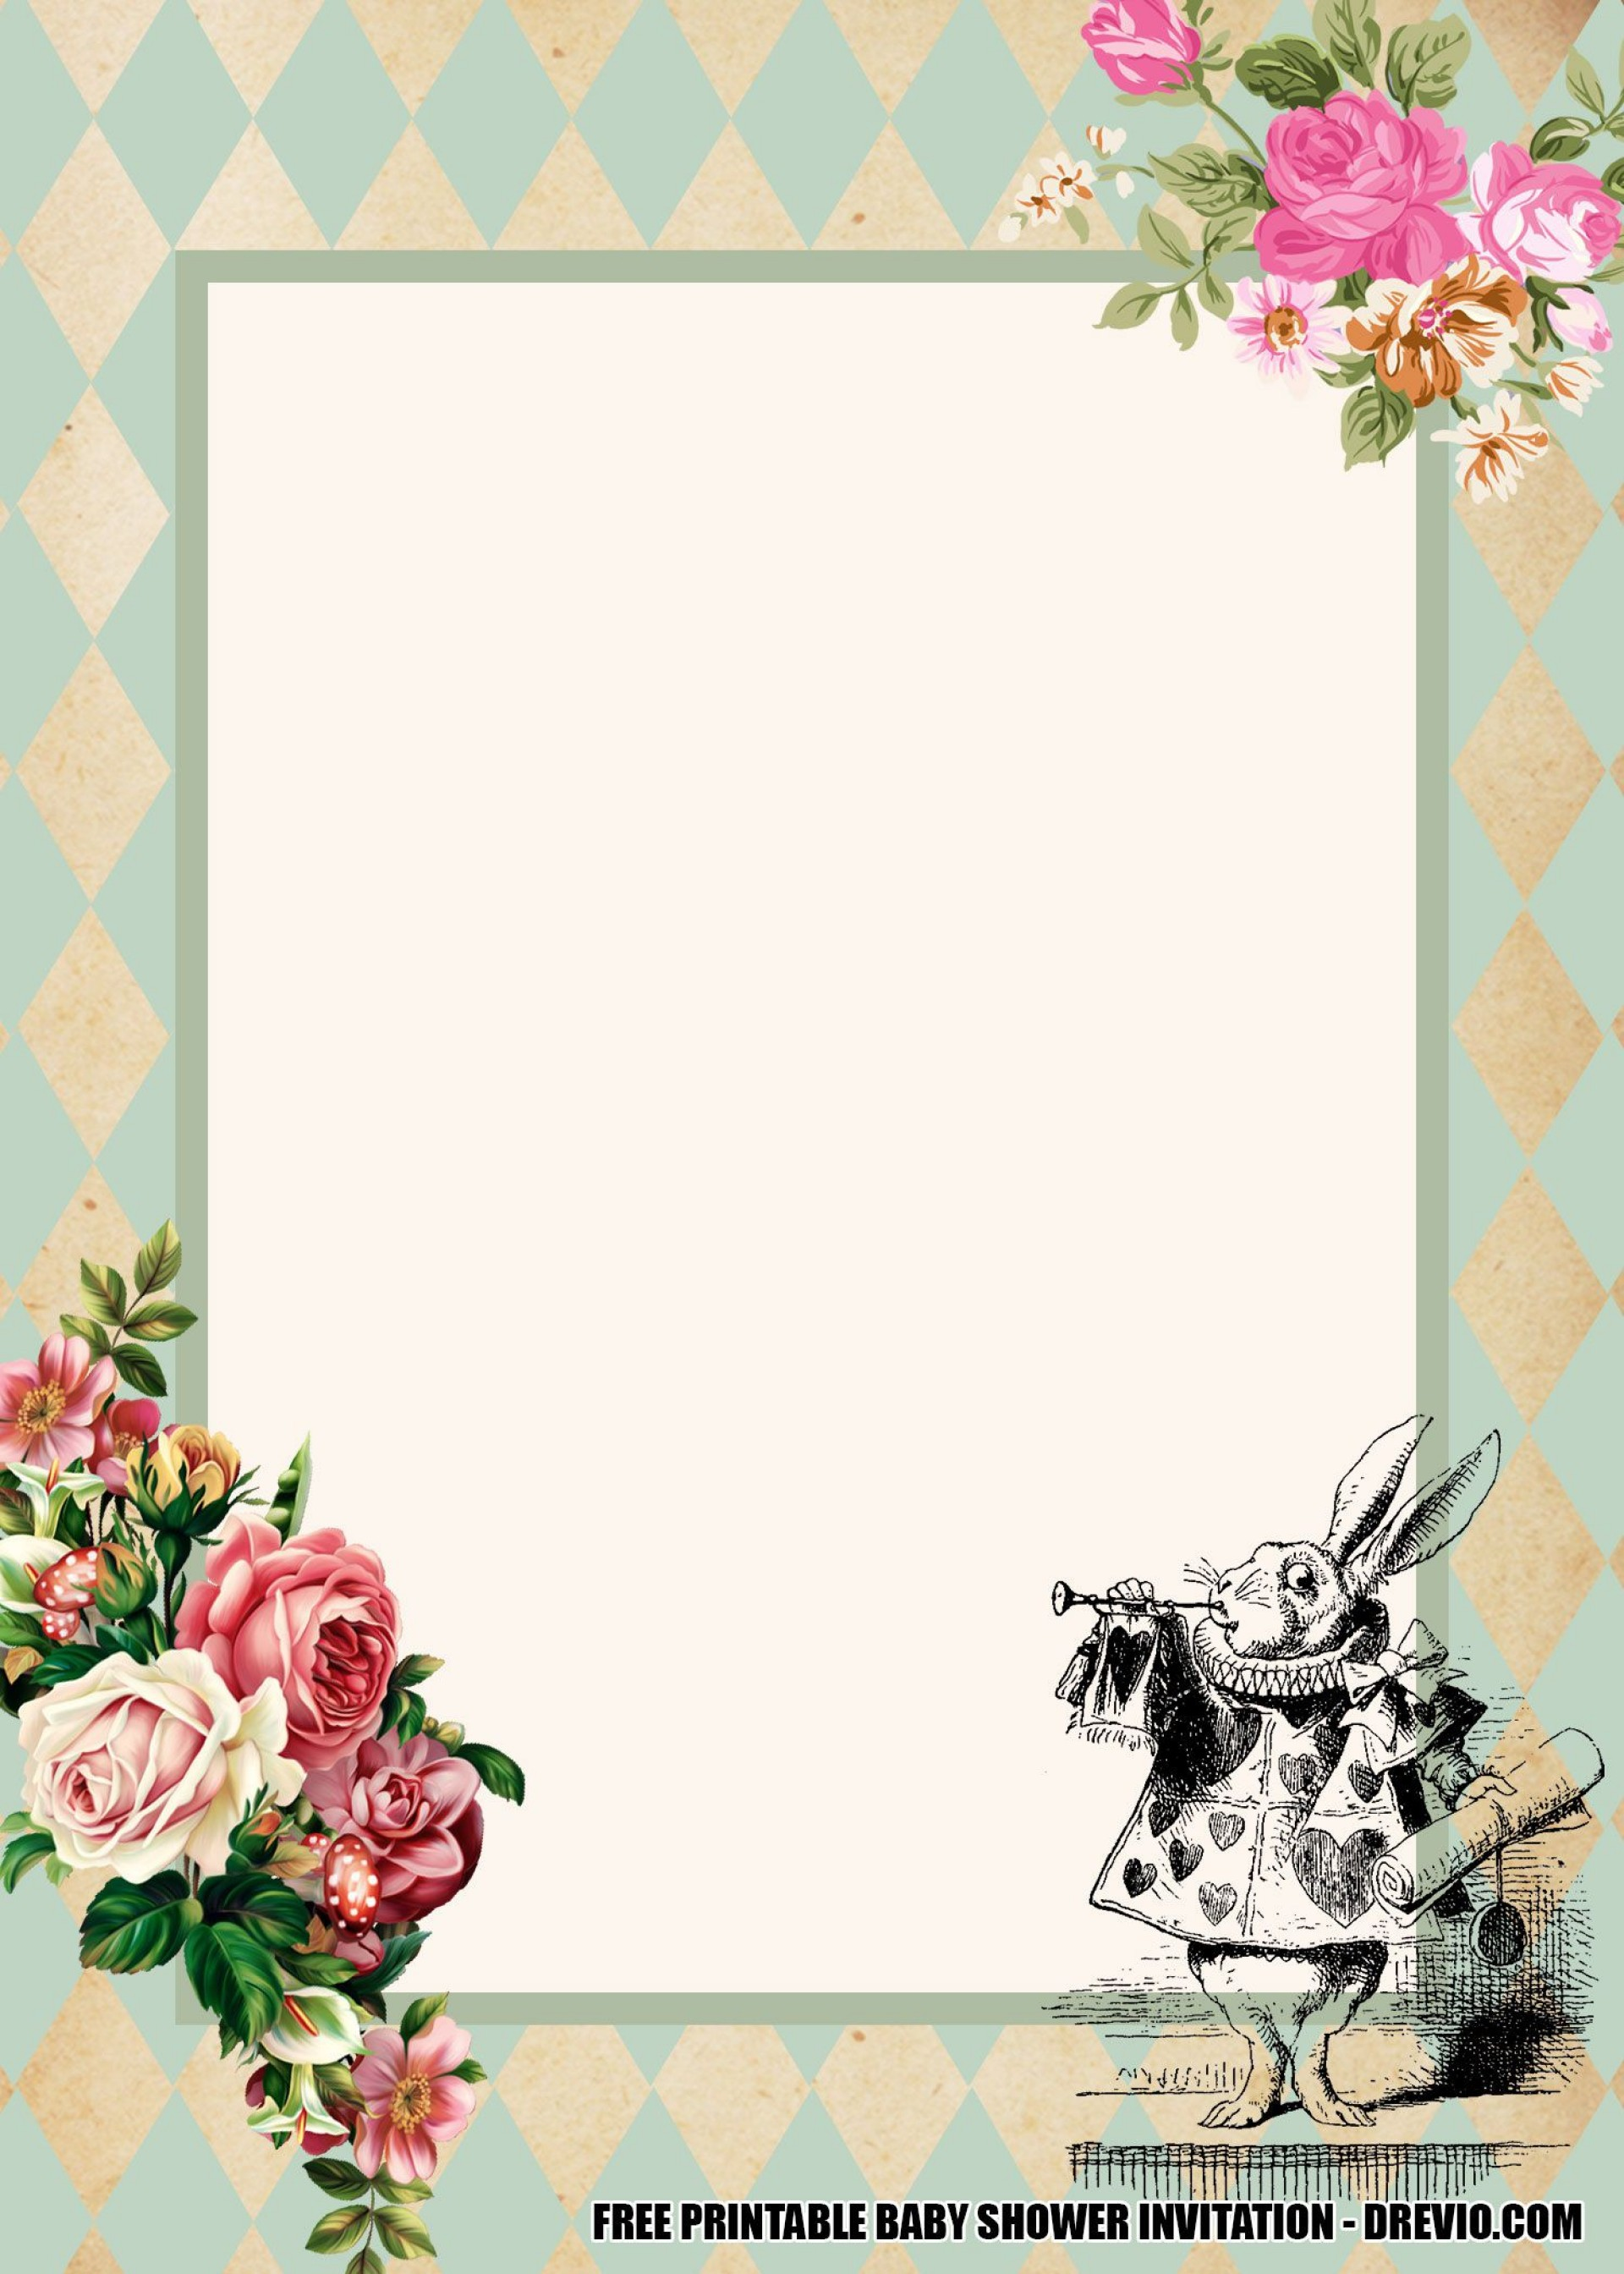 006 Wonderful Alice In Wonderland Invitation Template Example  Templates Birthday Free Wedding Wording Download1920